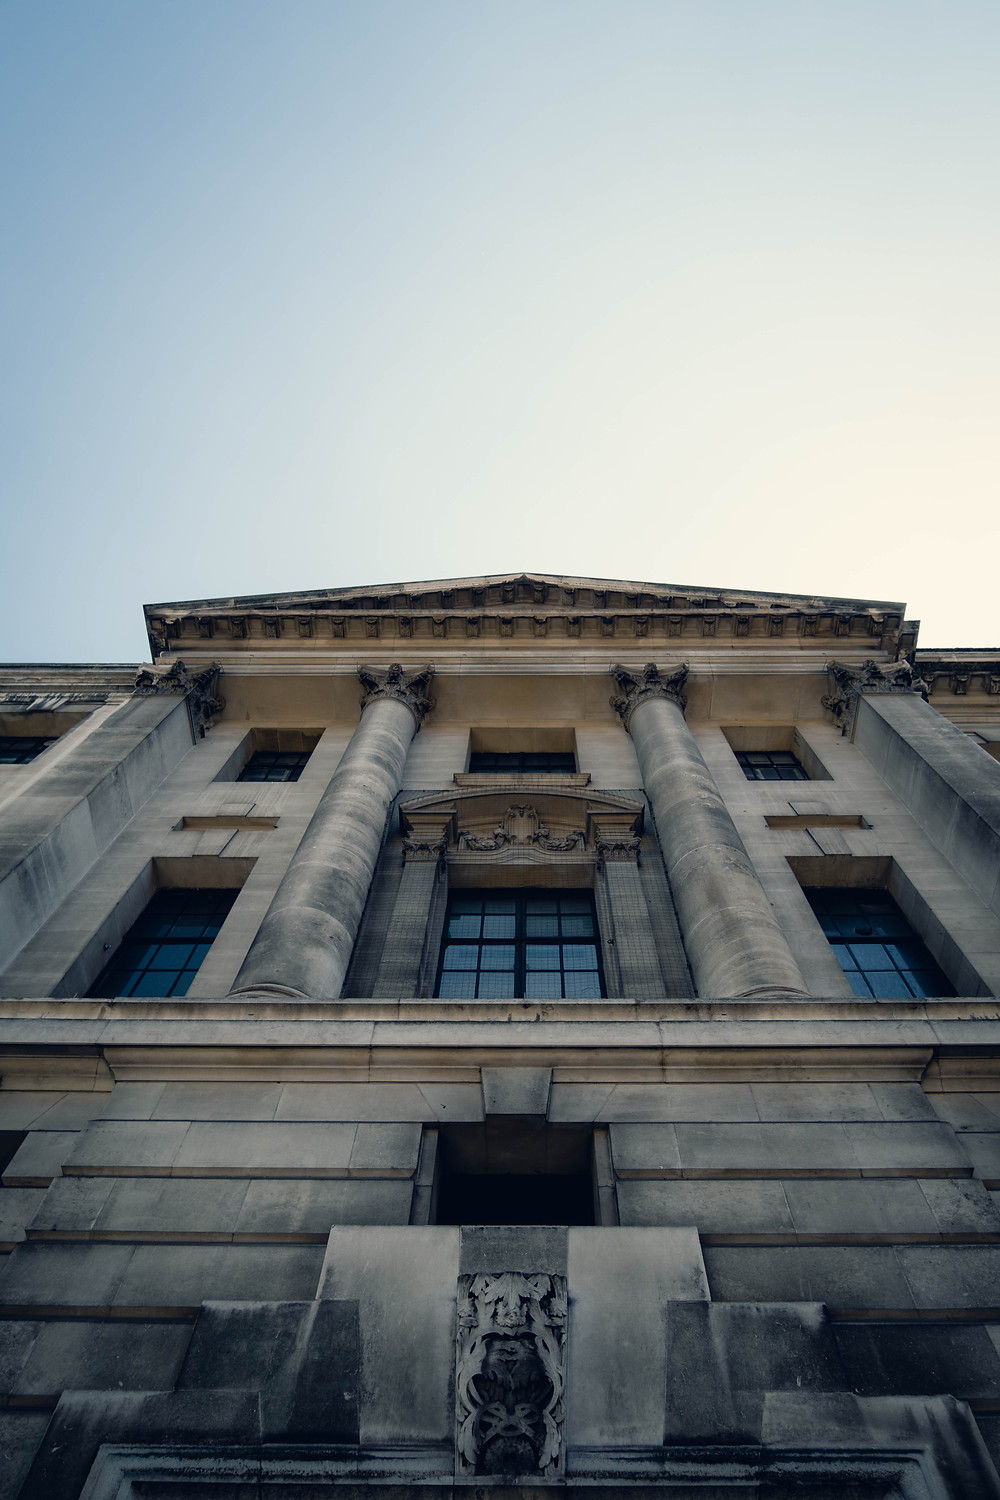 A photograph looking up at the Camden Town Hall